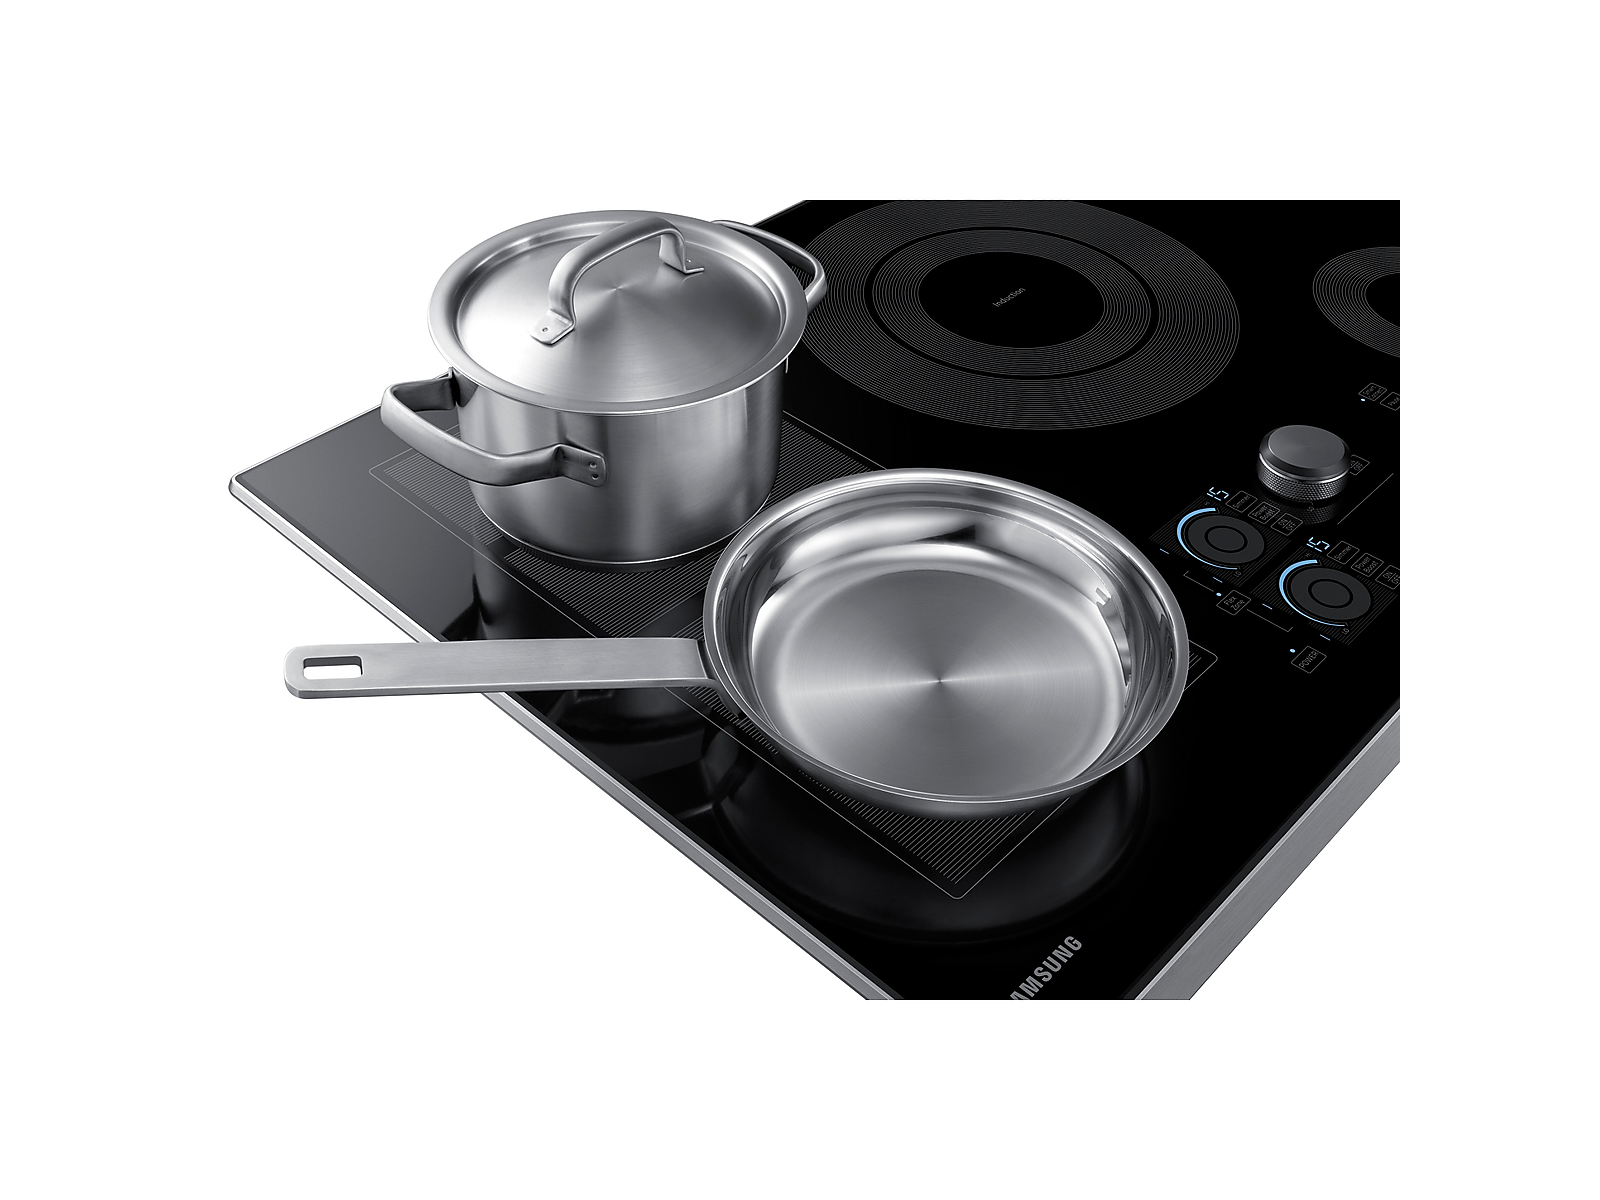 Samsung 30 Induction Cooktop In Black In 2020 Black Stainless Steel Samsung Stainless Steel